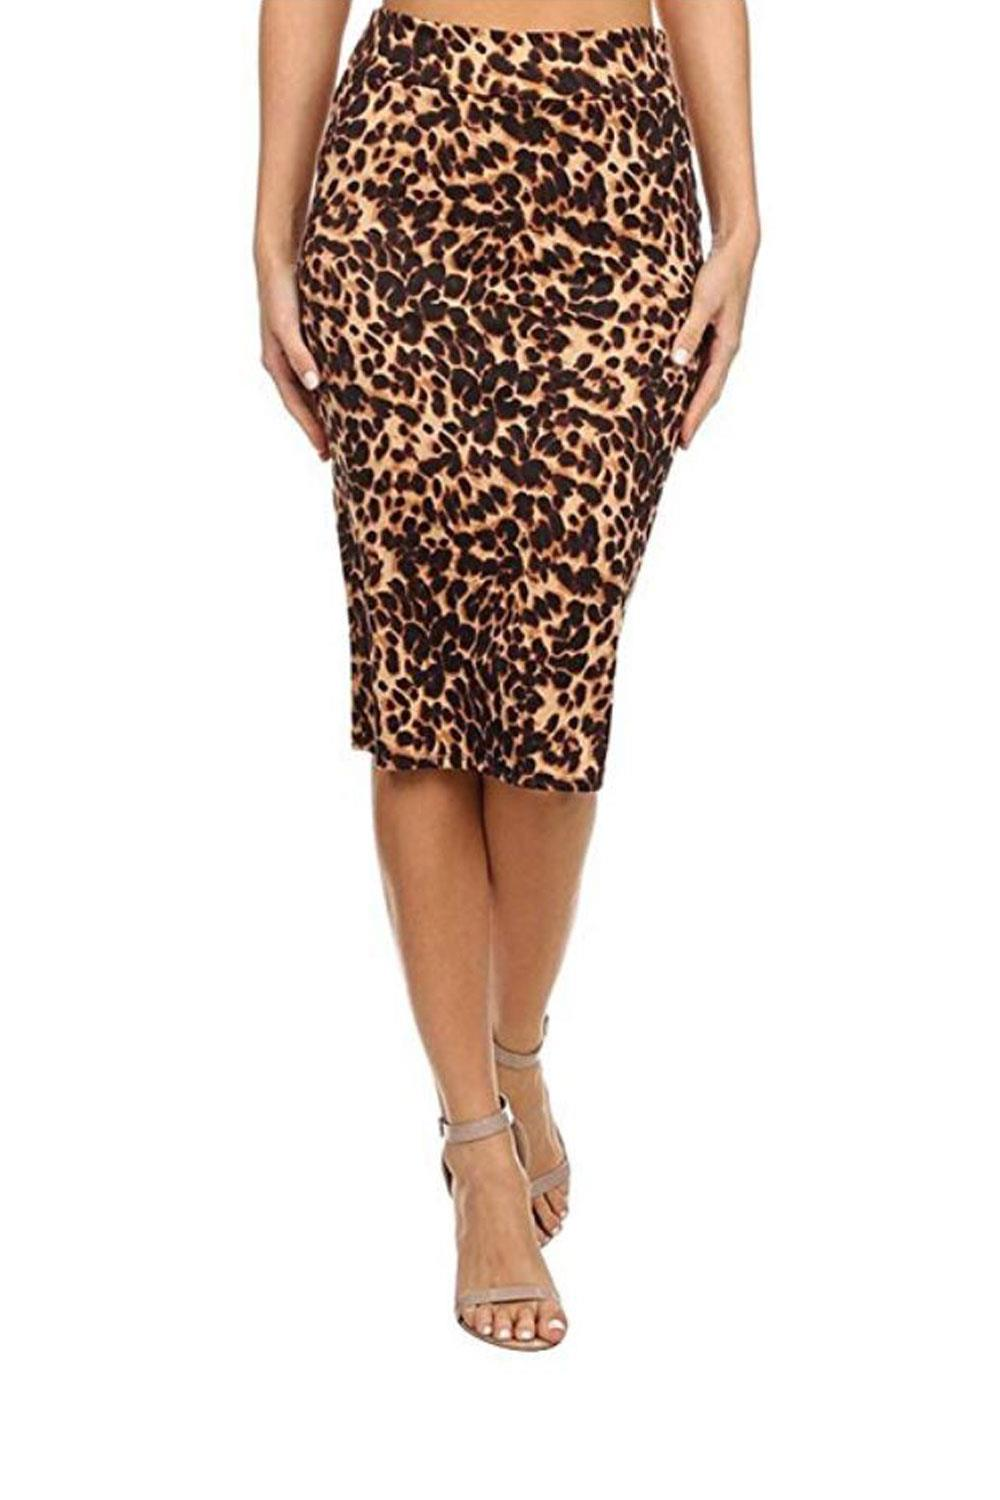 falda leopardo amazon E.Jan1st, 20€ aprox.